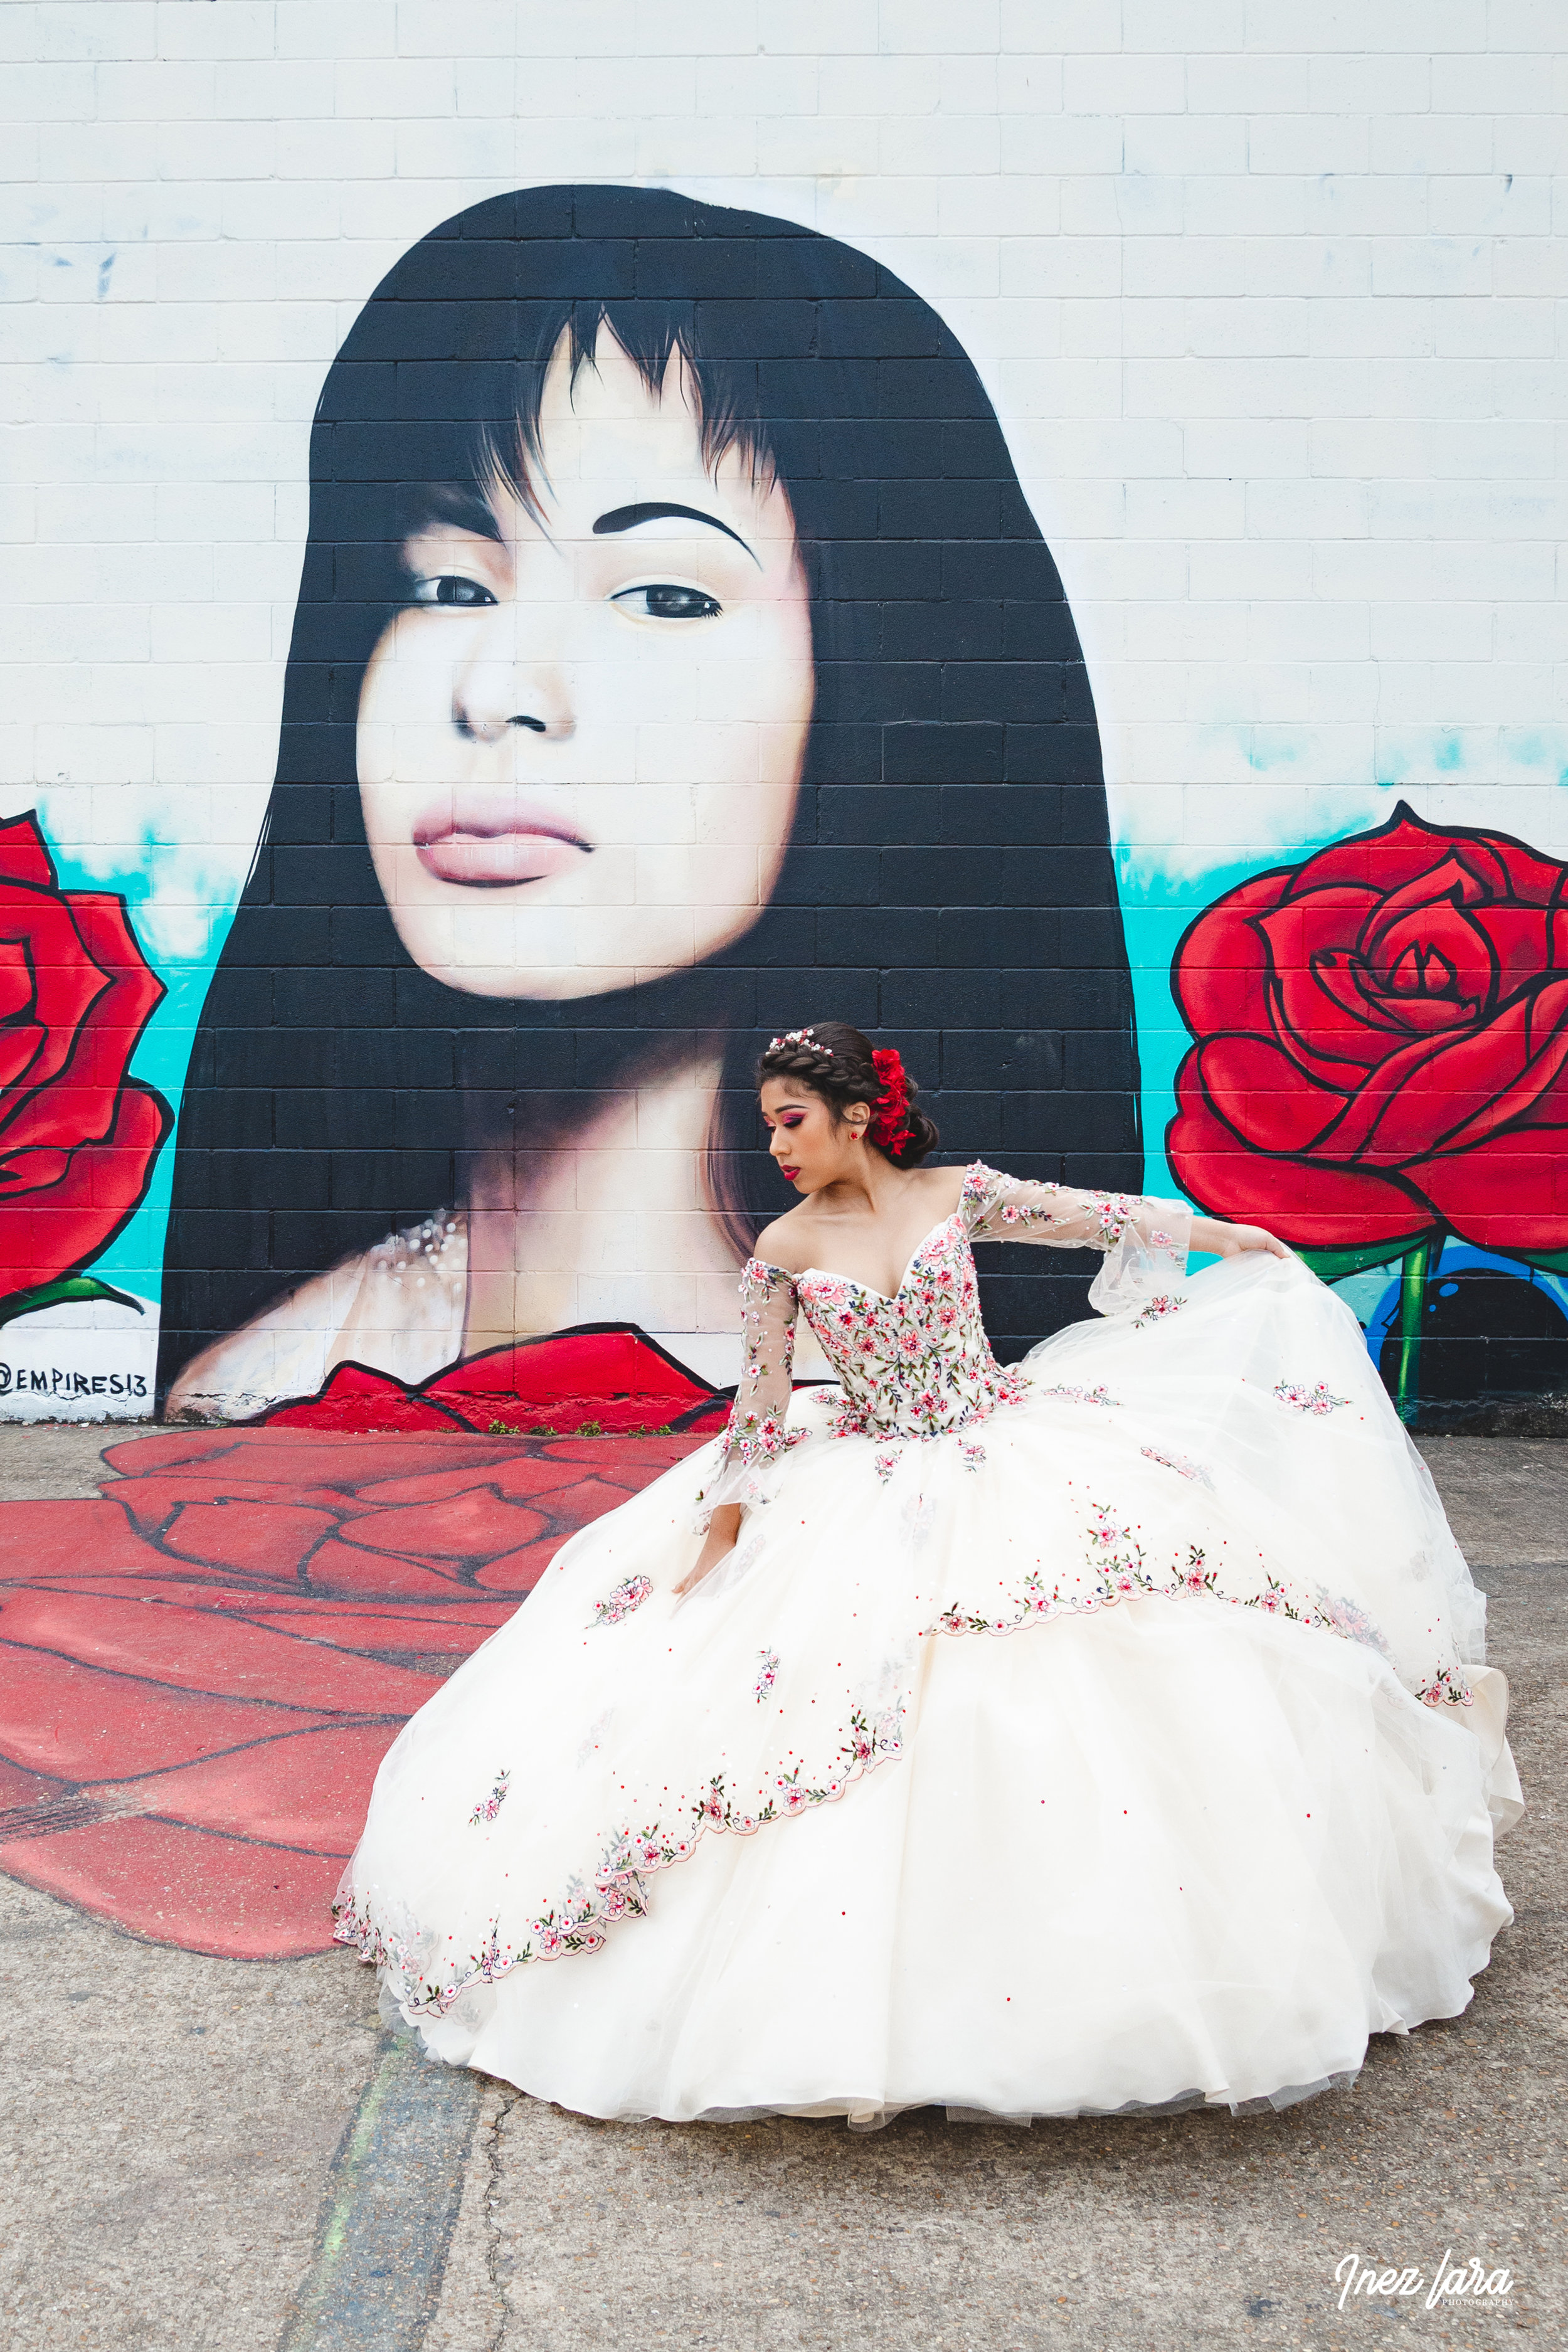 houston wedding quince sweet 16 batmitzvah mar mitvahquinceanera best photographer katy texas engagementQuinceanera Dresses ideas hairstyles themes decorations photography poses cakes photoshoot houston texas best quinceanera photographer